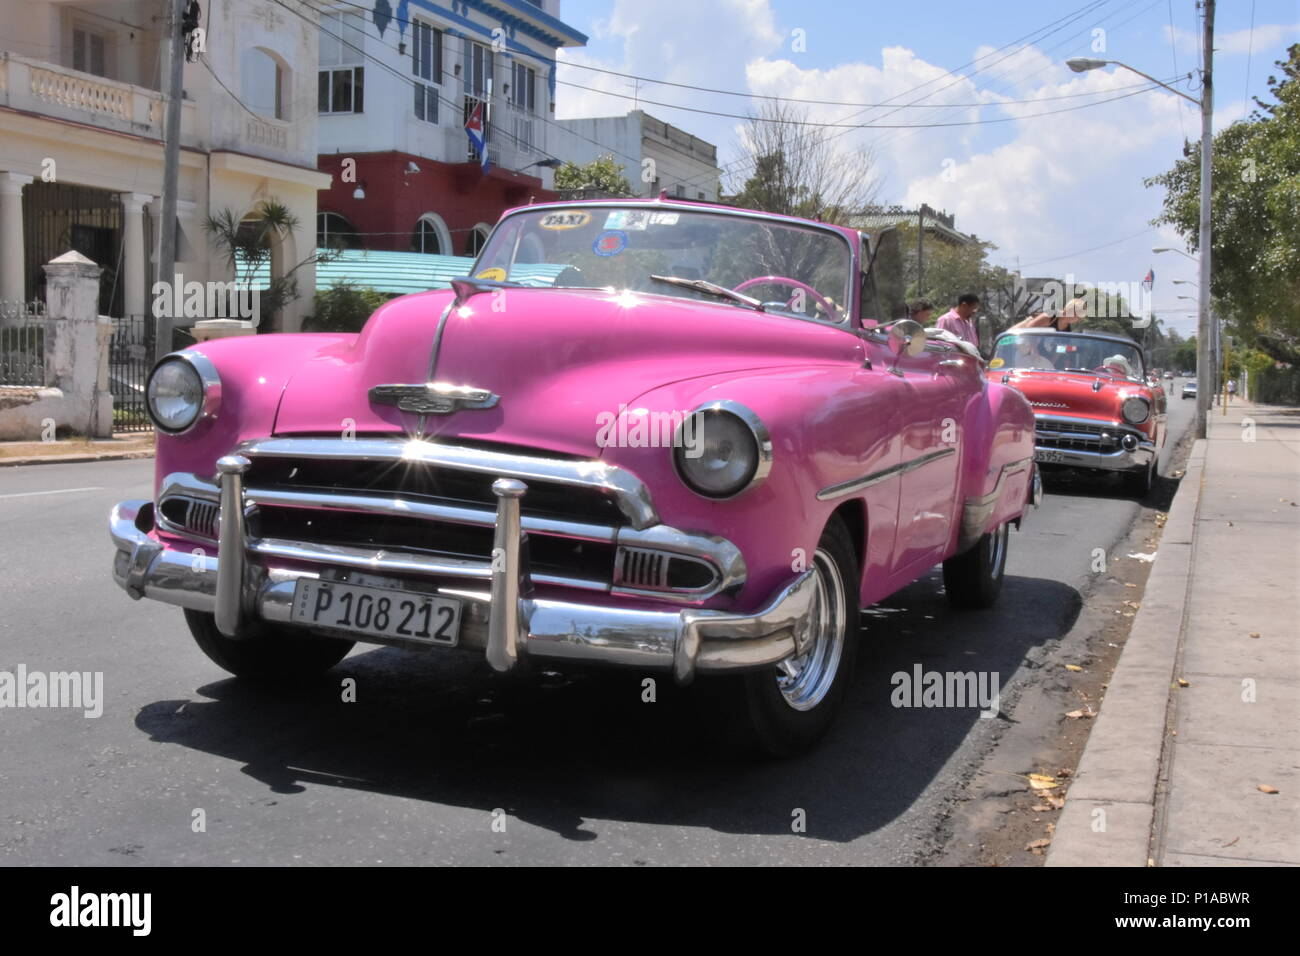 Pink Convertible Car High Resolution Stock Photography And Images Alamy